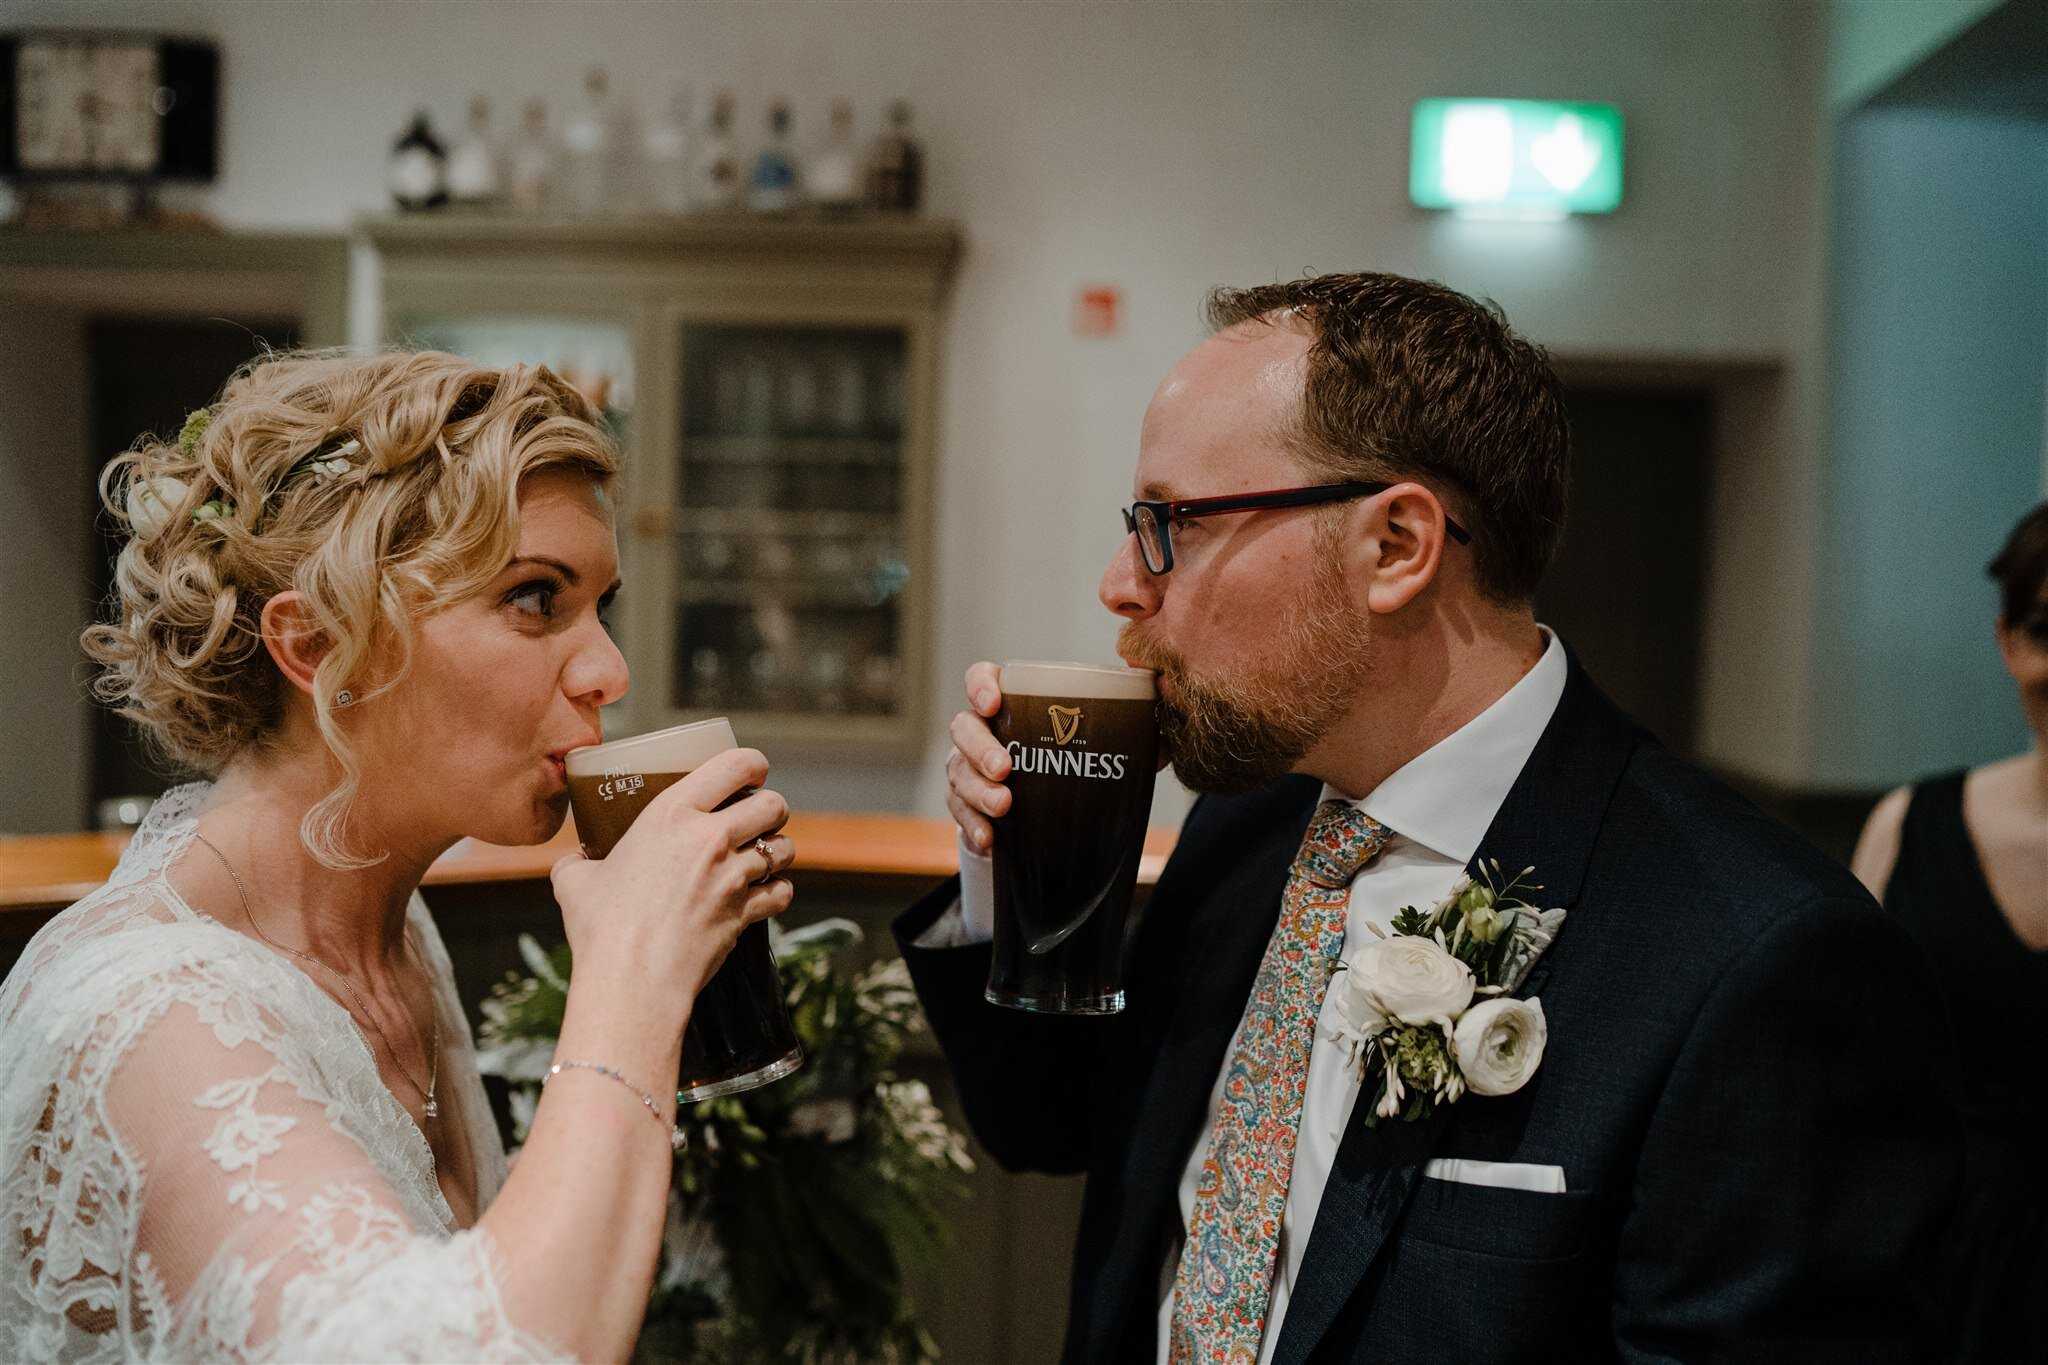 Bride groom first pint Guinness Tullyveery house wedding